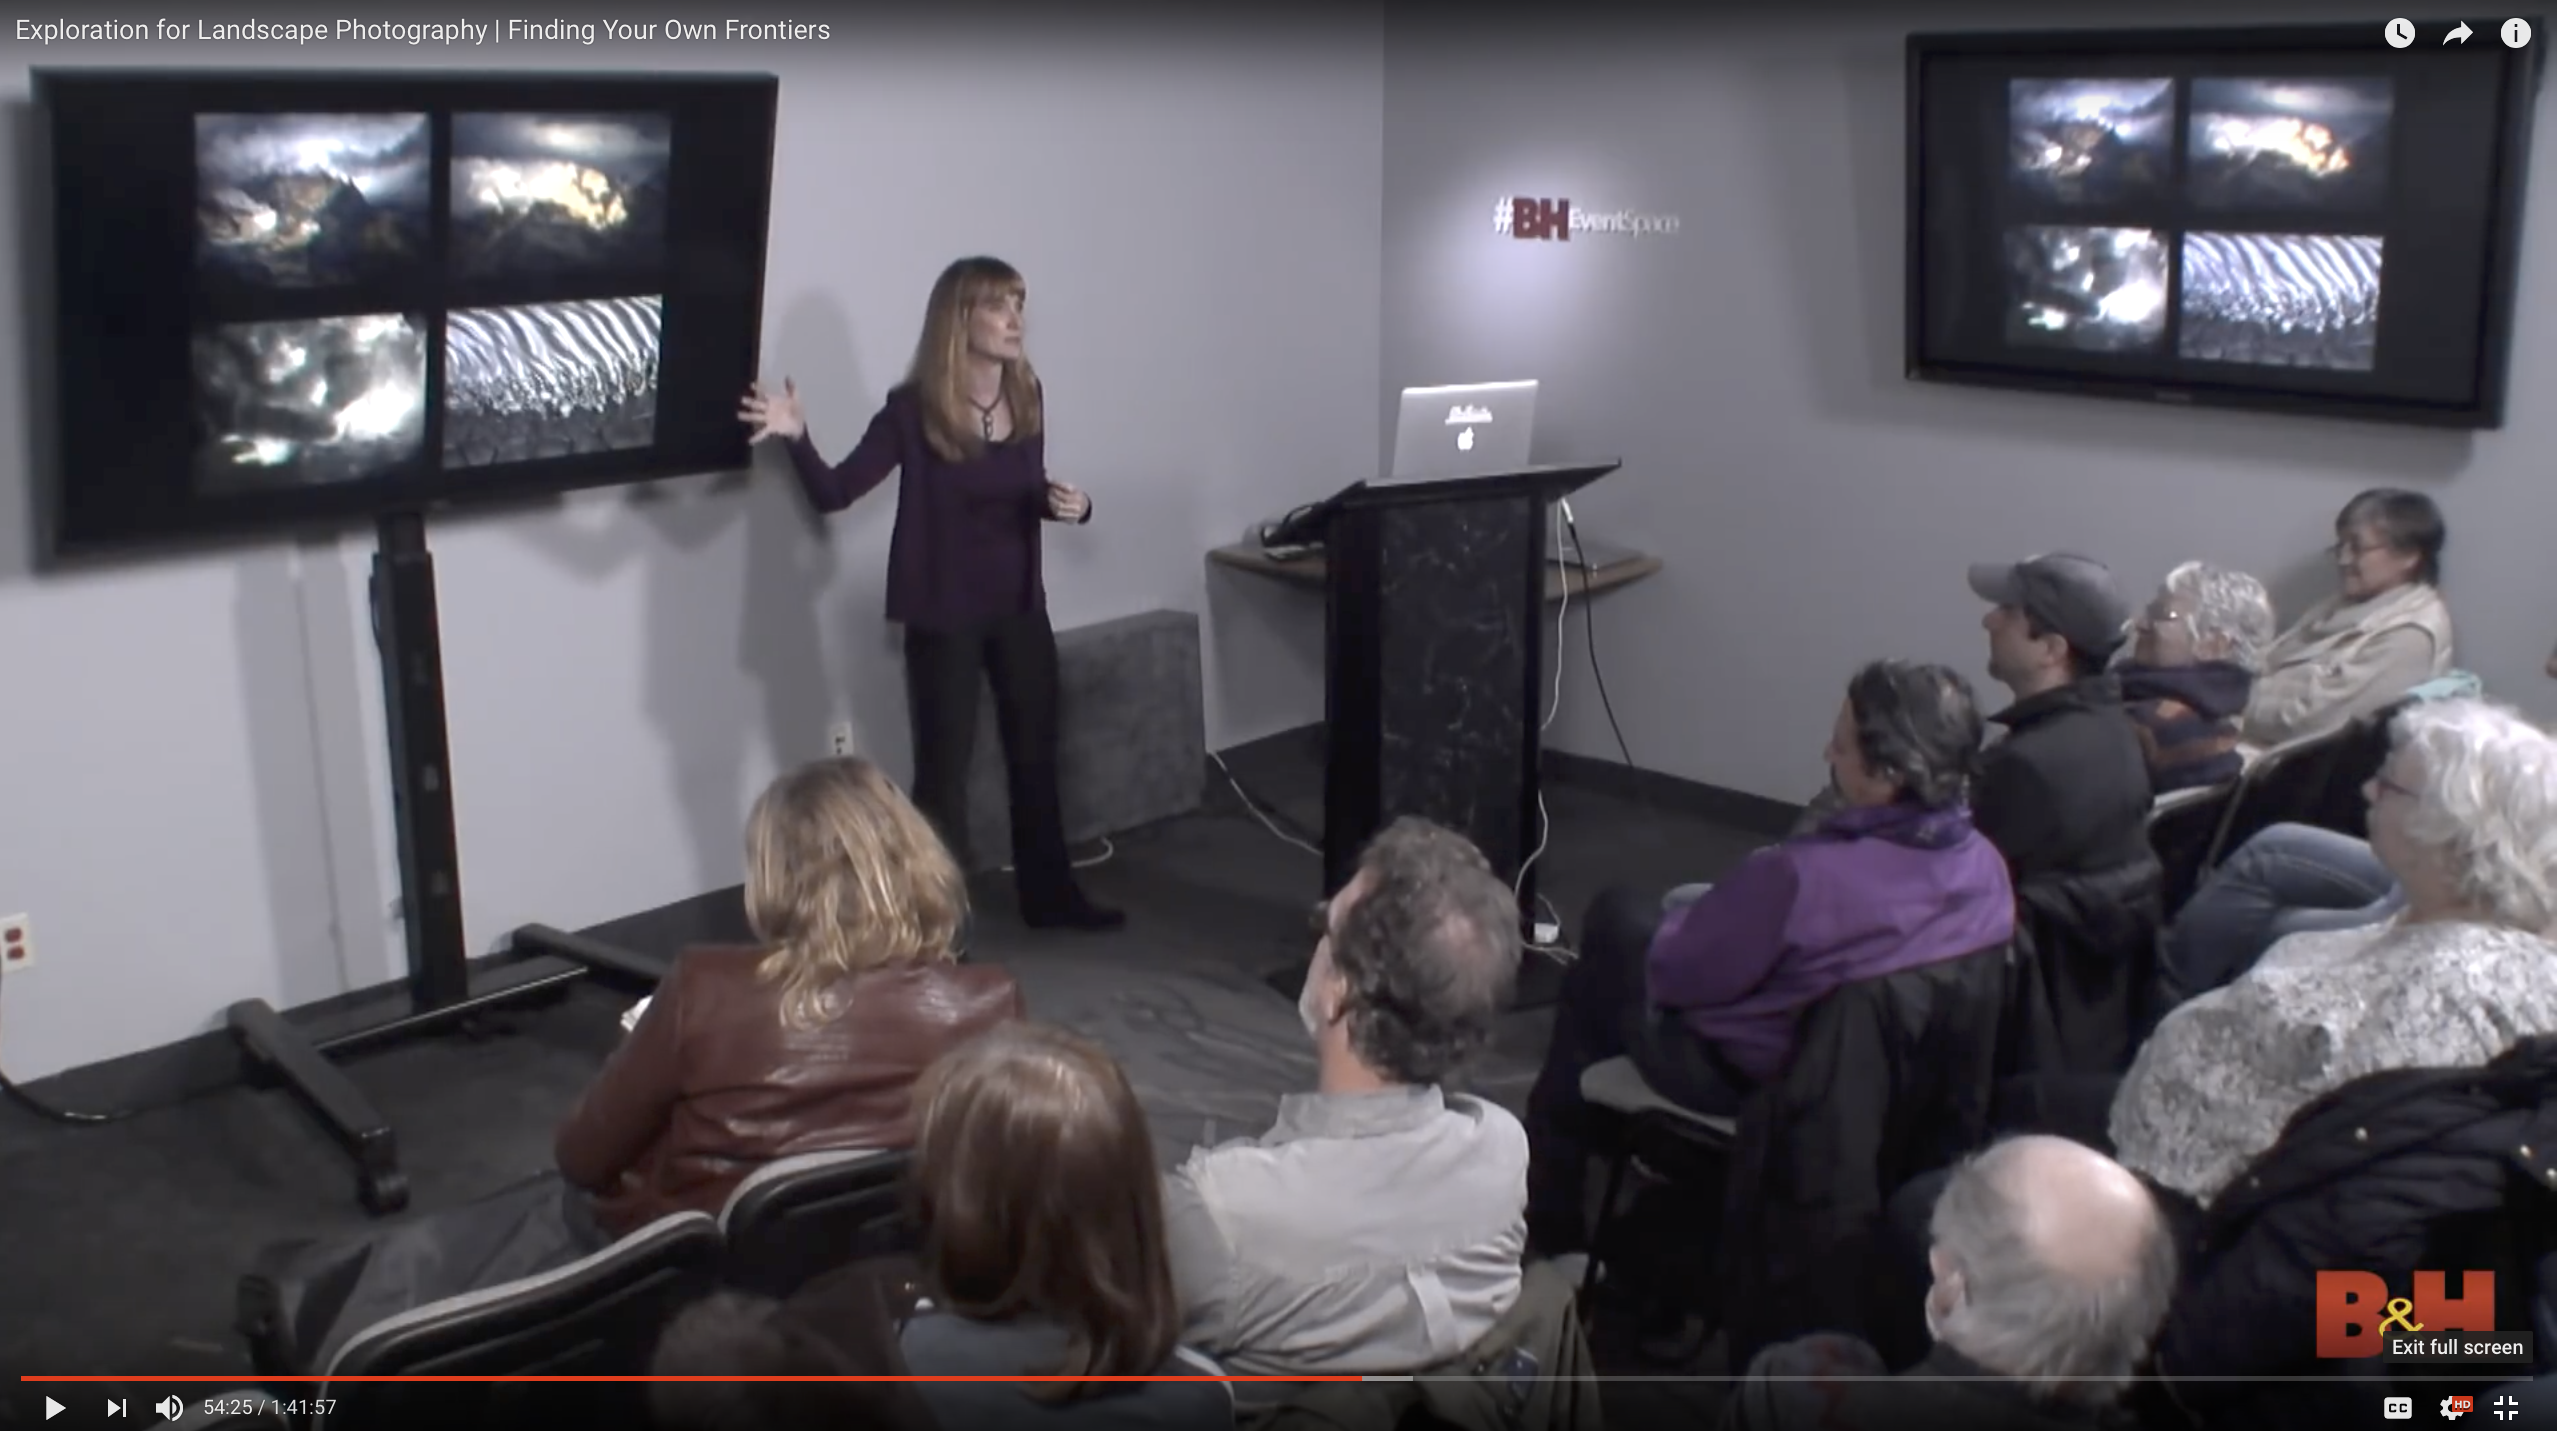 Free video of Erin Babnik's Exploration Talk at the B&H Event Space